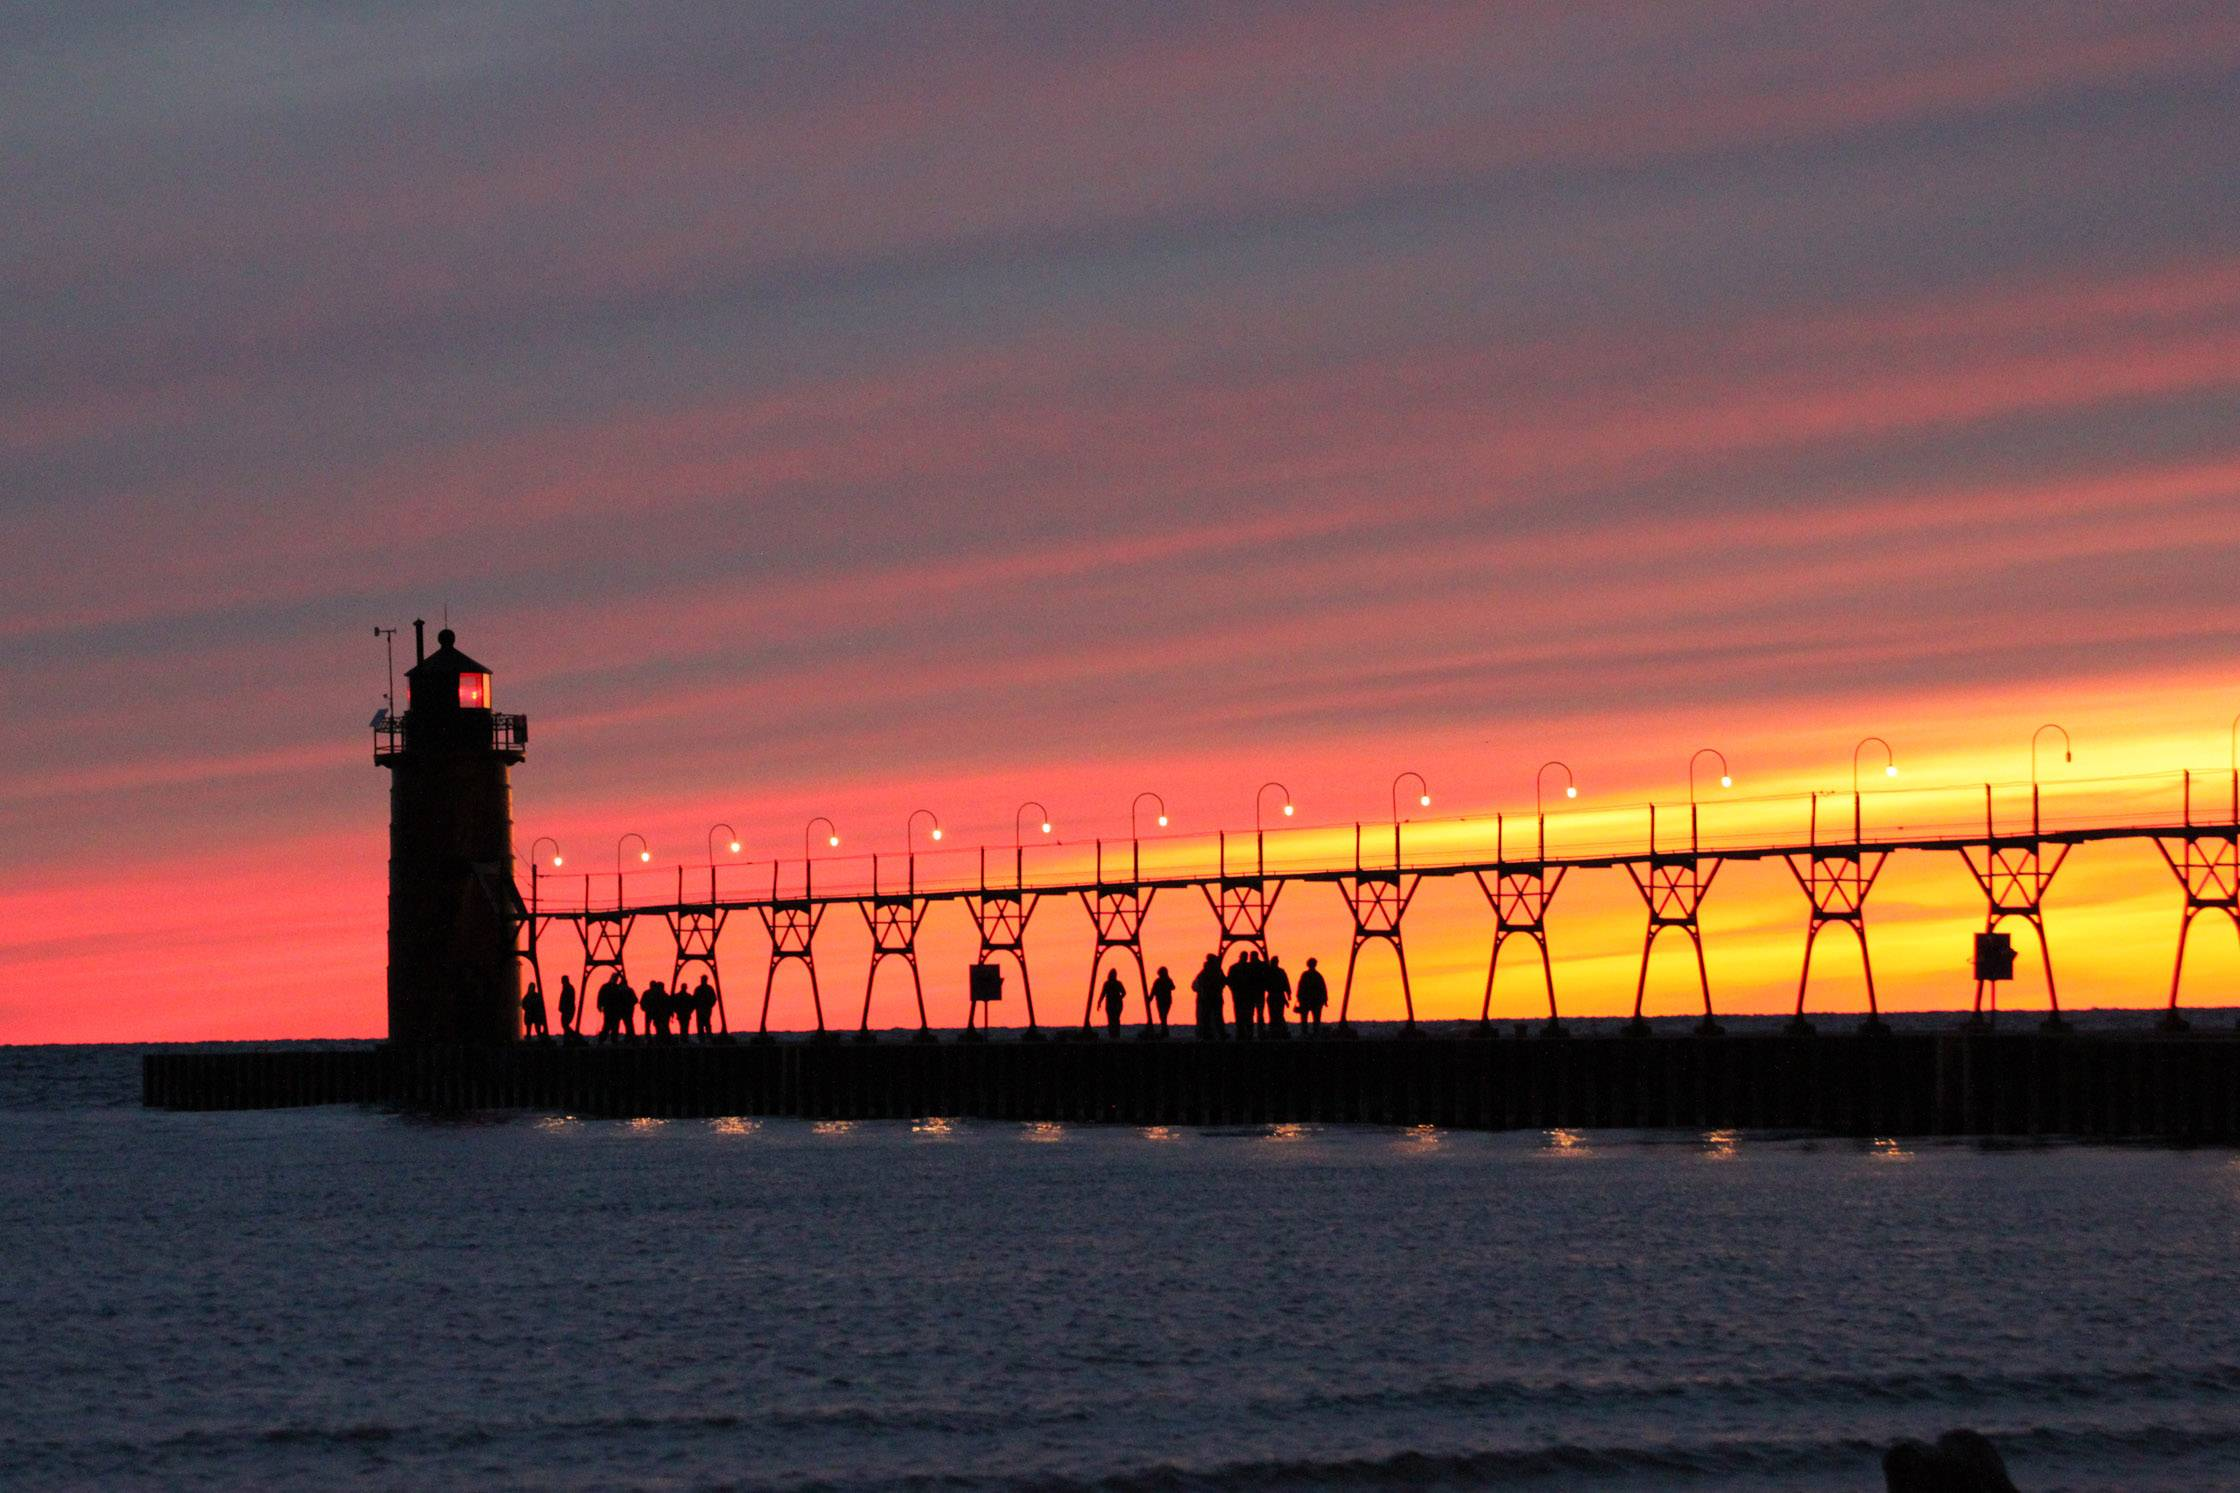 October sunset in South Haven, Michigan.